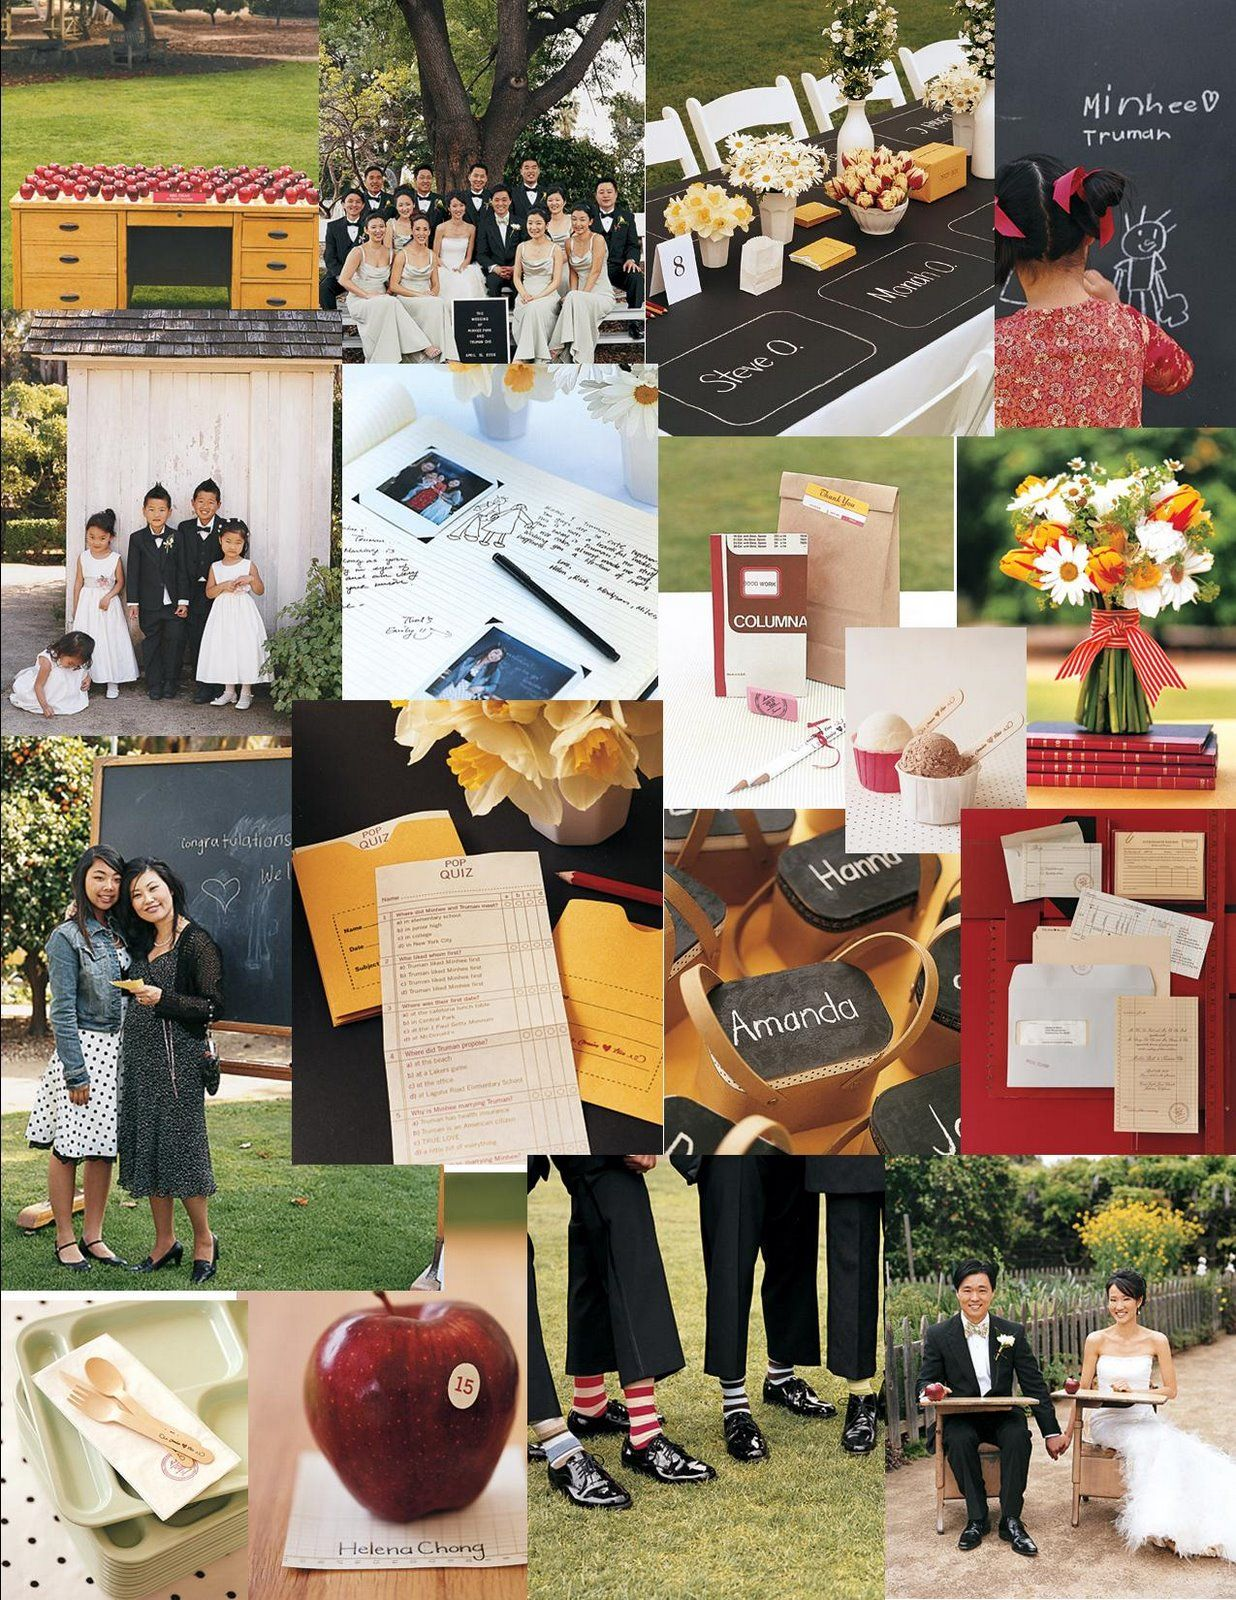 Childhood Sweethearts Meet At School College Or Uni And What To Celebrate Where Your Love Bloomed How About A Themed Wedding Day